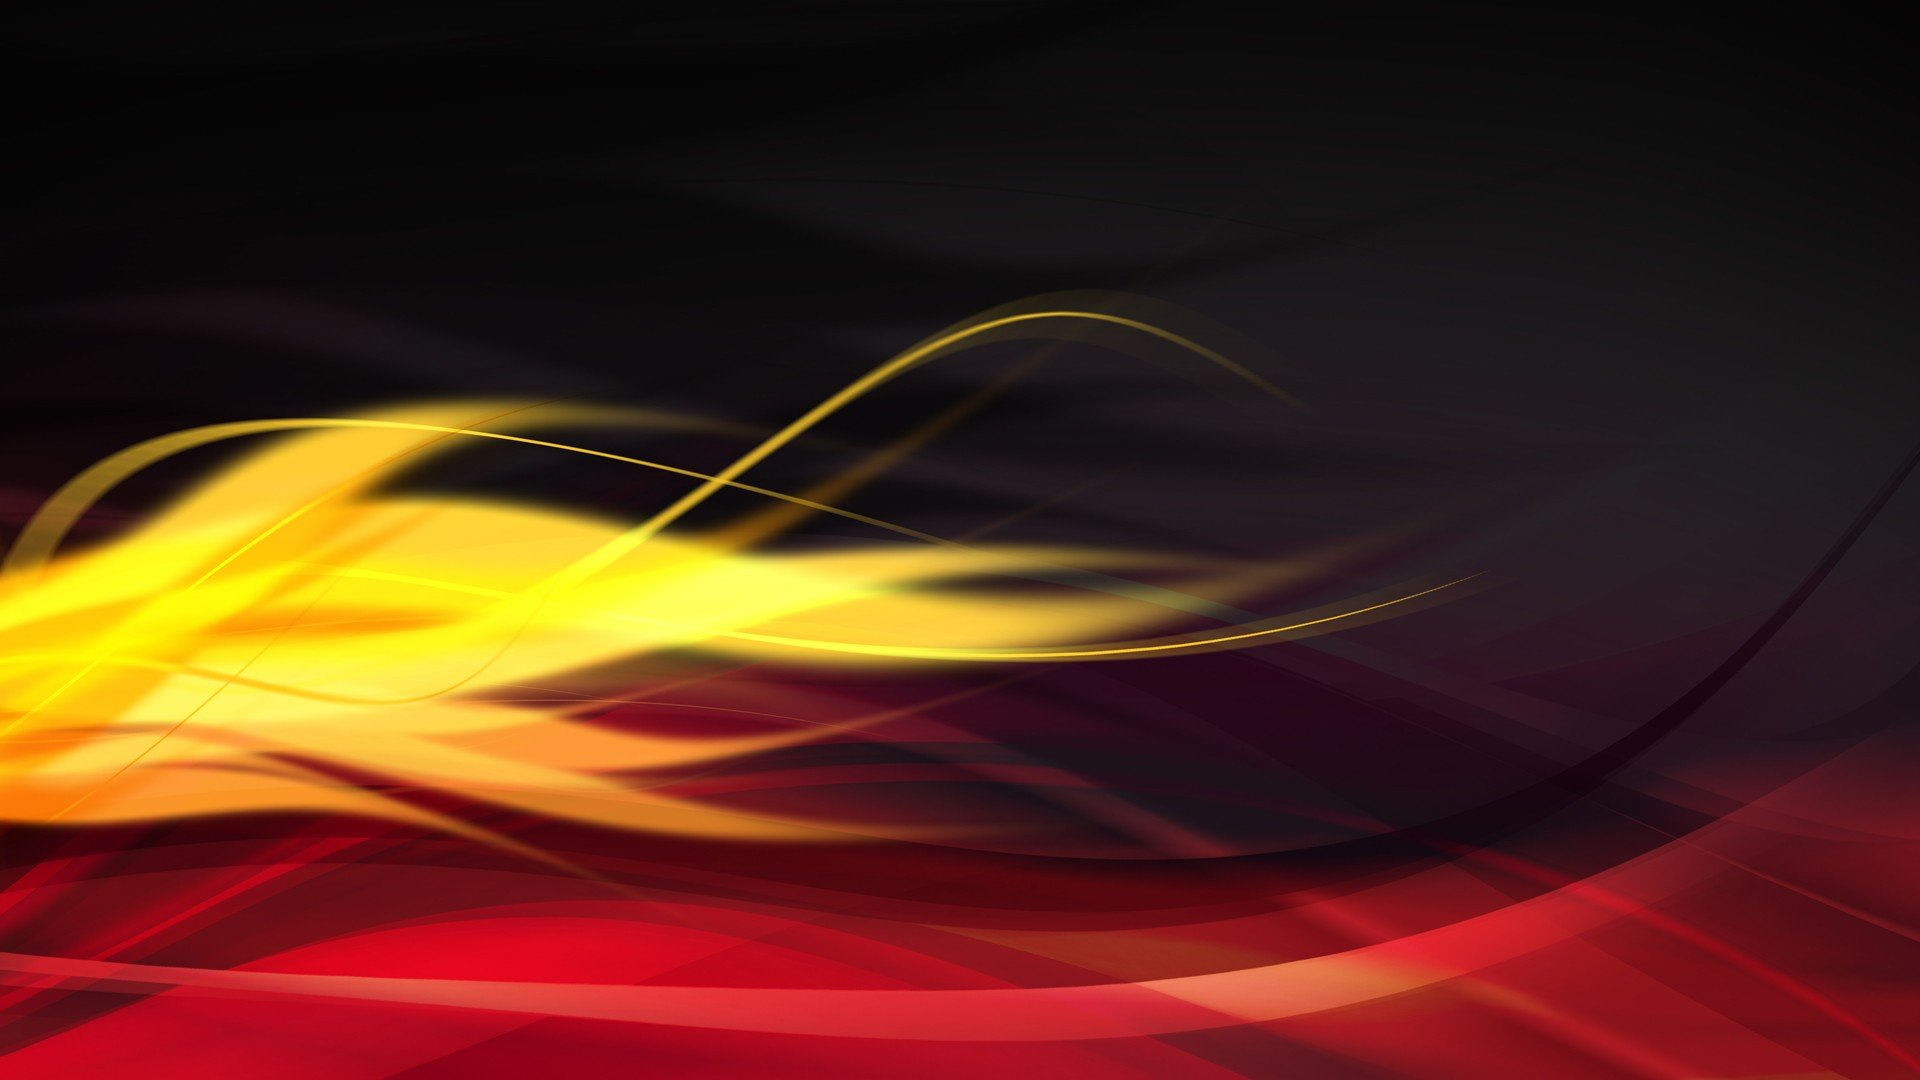 abstract black digital art red flame